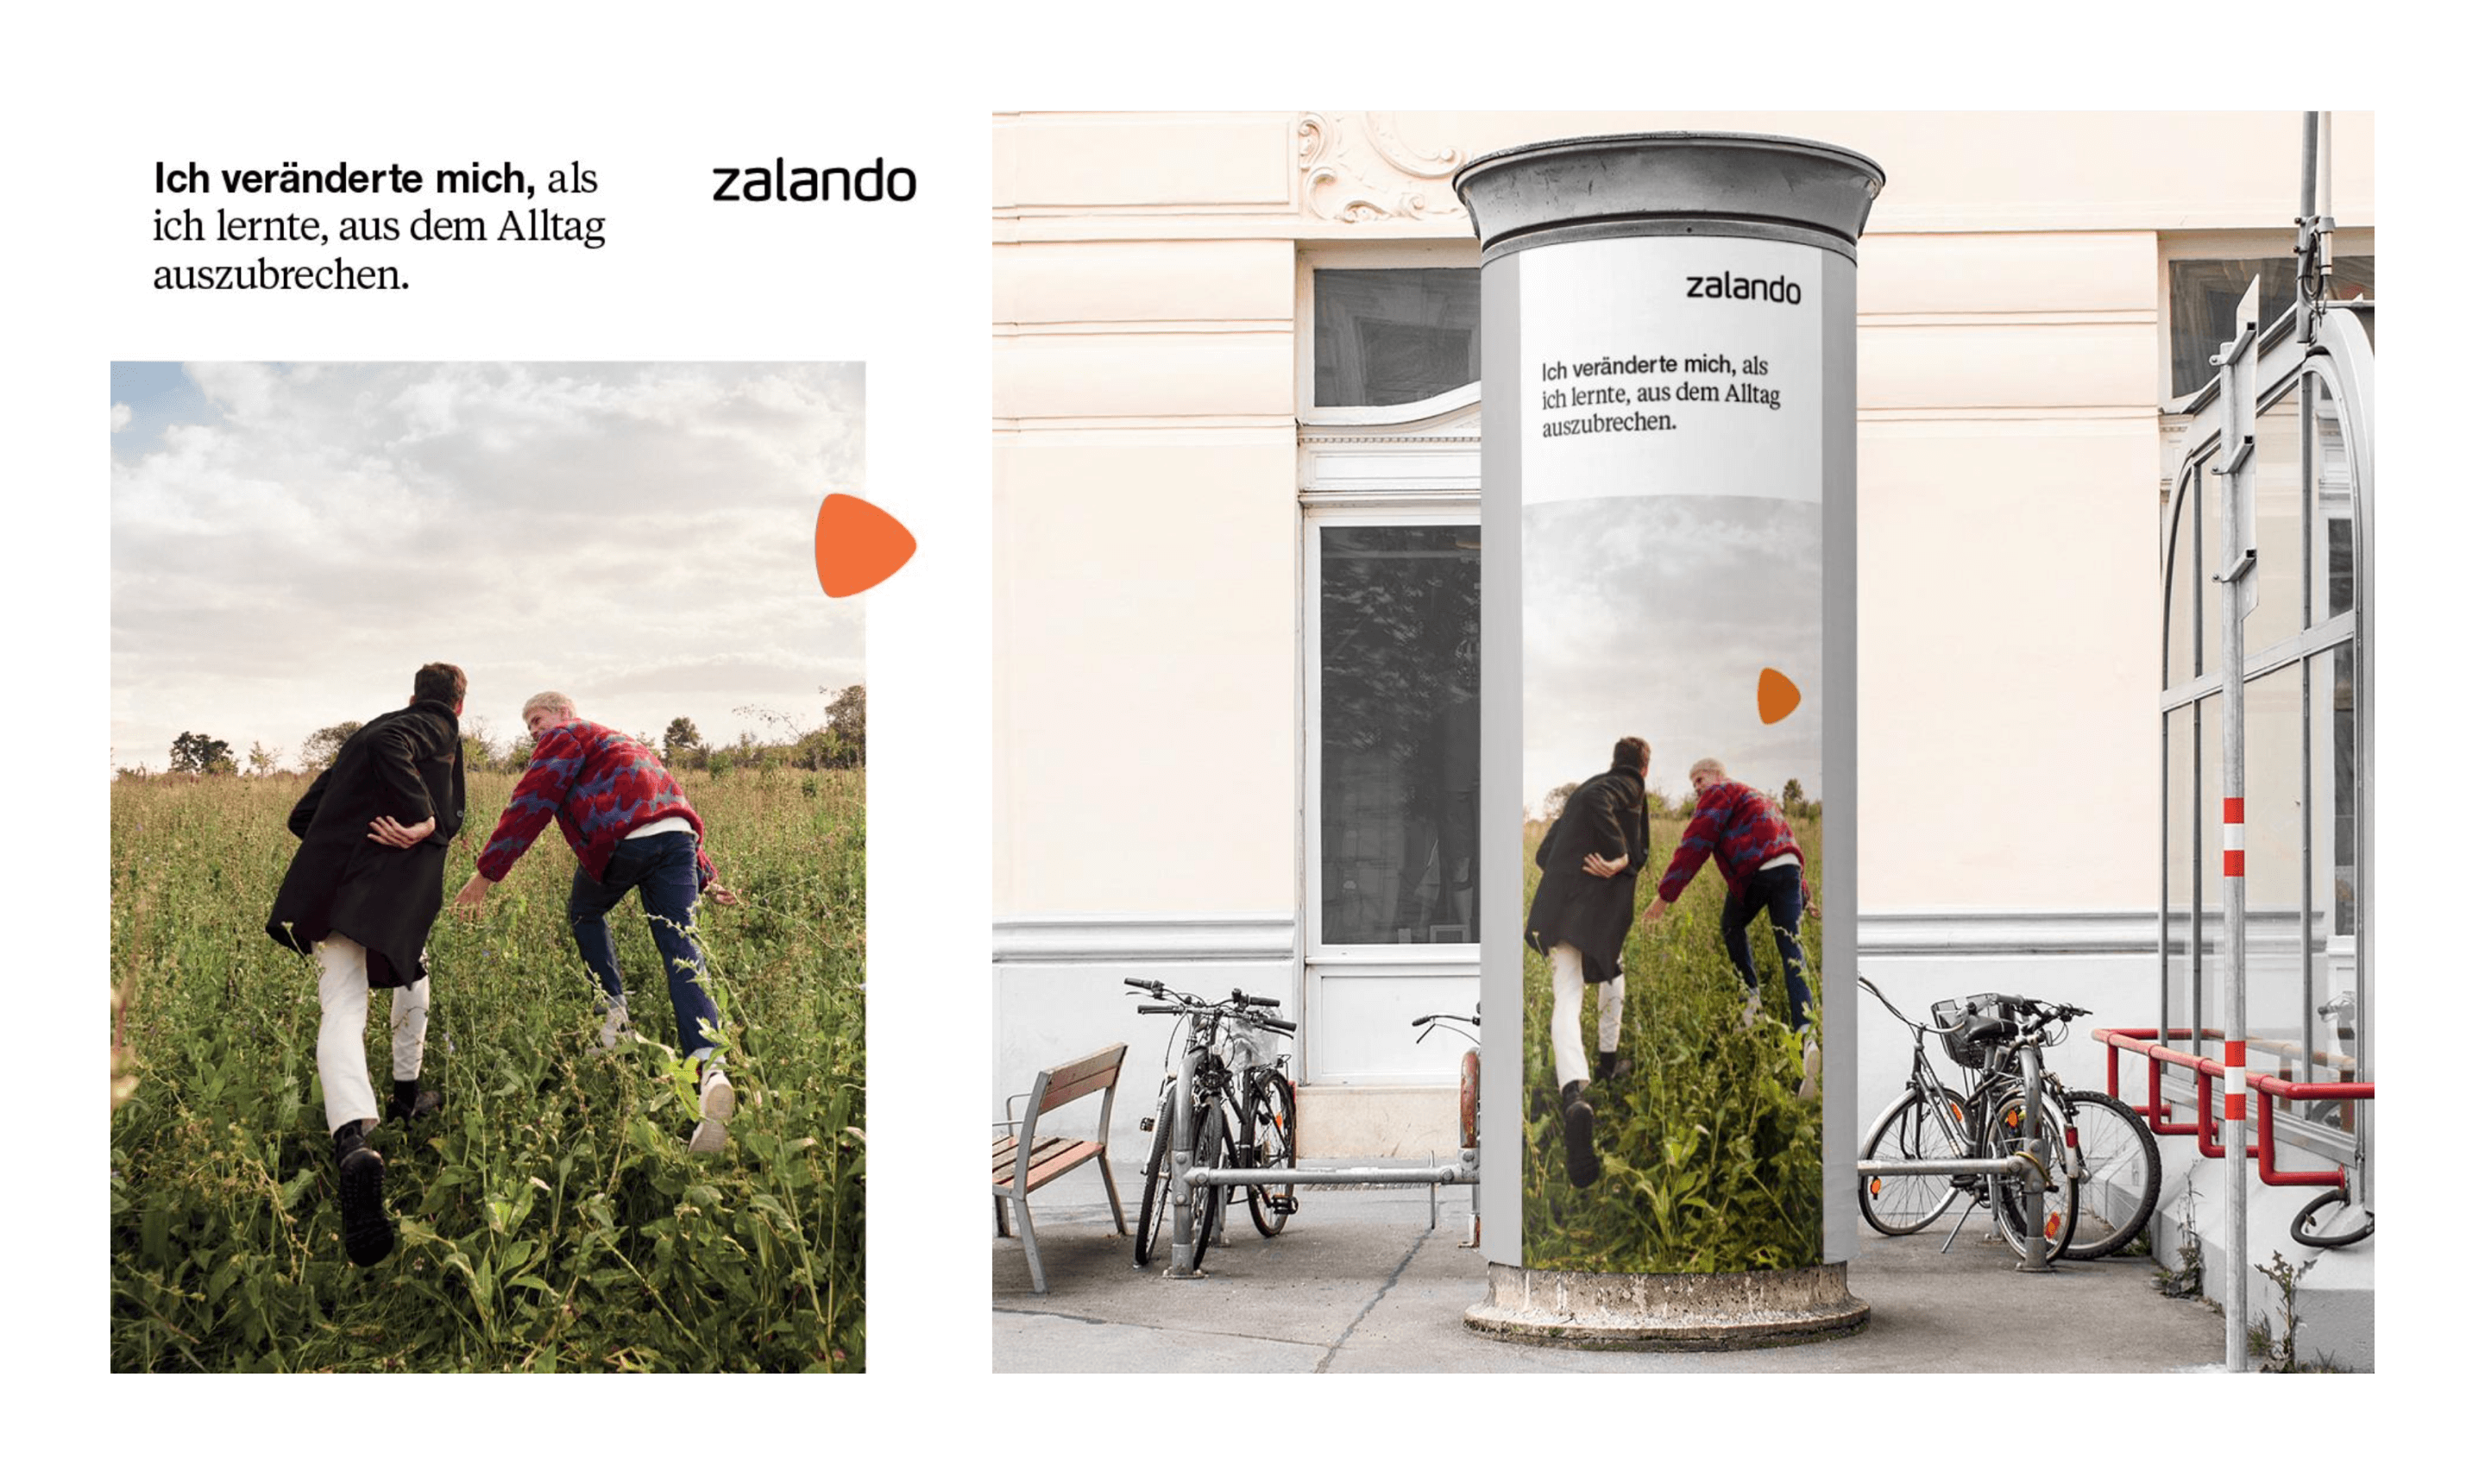 Application of the type pairing on OoH. Design by Zalando's MS&C team